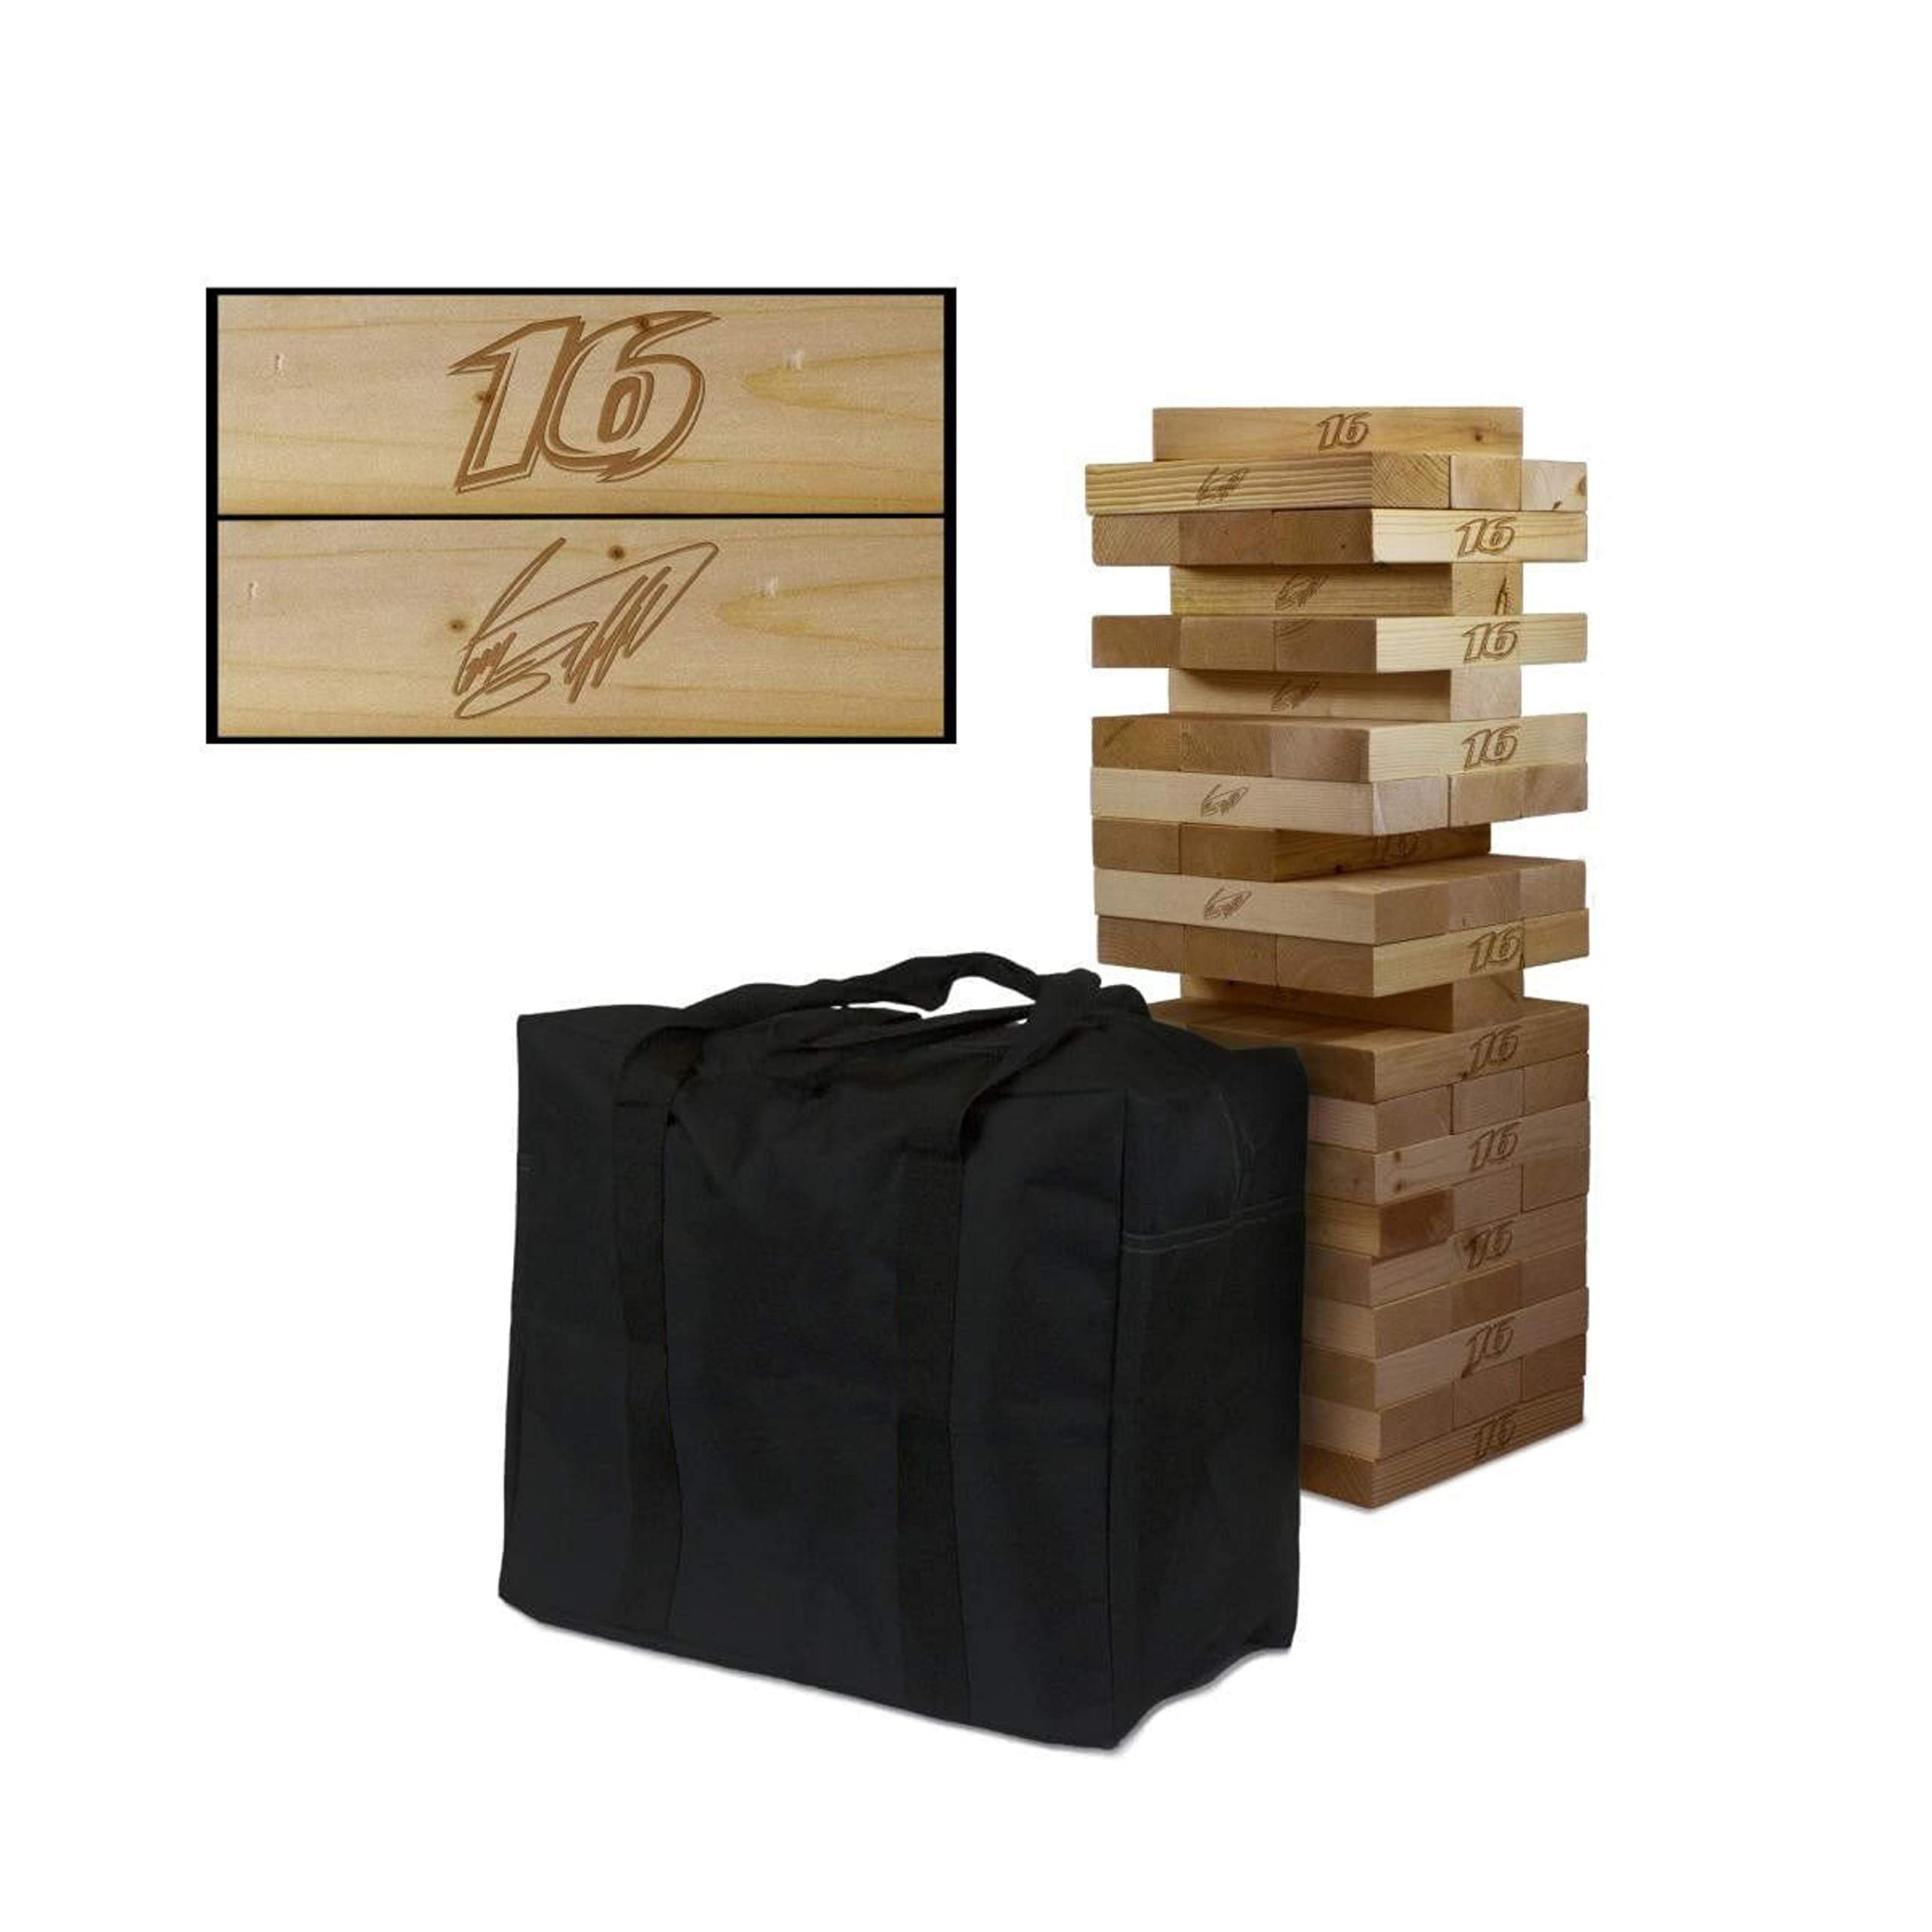 Victory Tailgate #16 Greg Biffle Wooden Tumble Tower Game